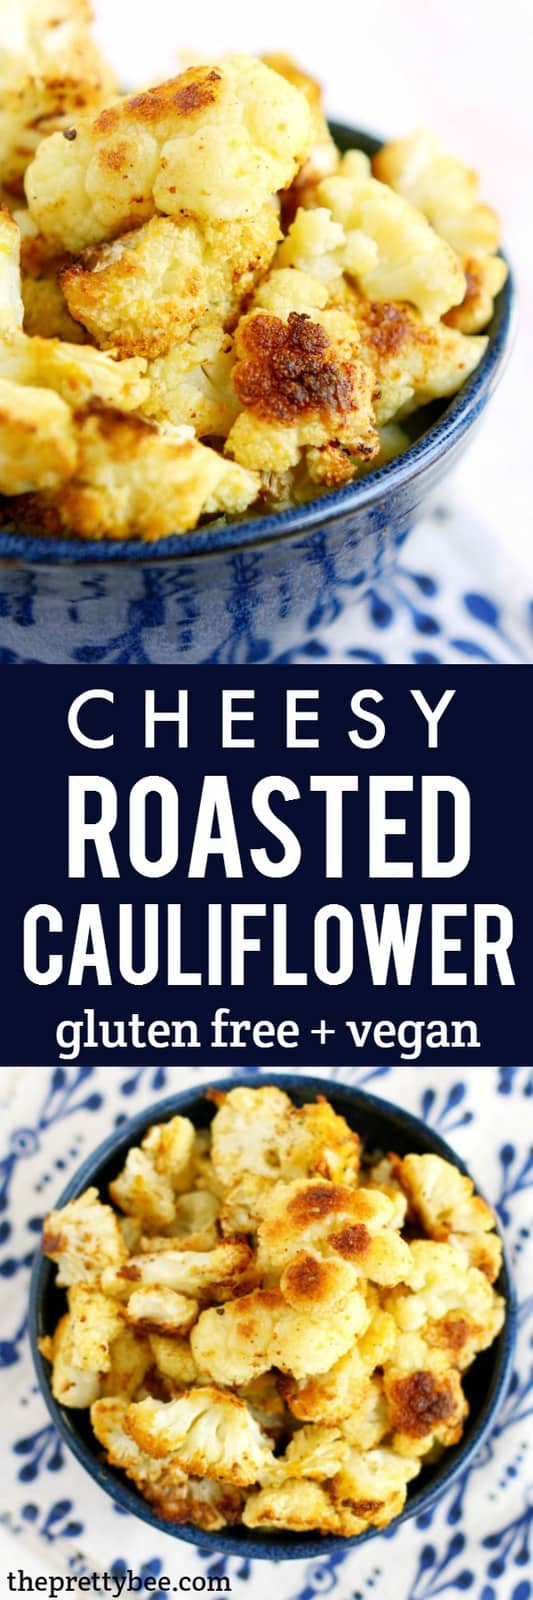 Easy, cheesy, dairy free and vegan roasted cauliflower recipe. This is an amazing side dish that's healthy and tasty! #vegan #grainfree #glutenfree #dairyfree #cauliflower